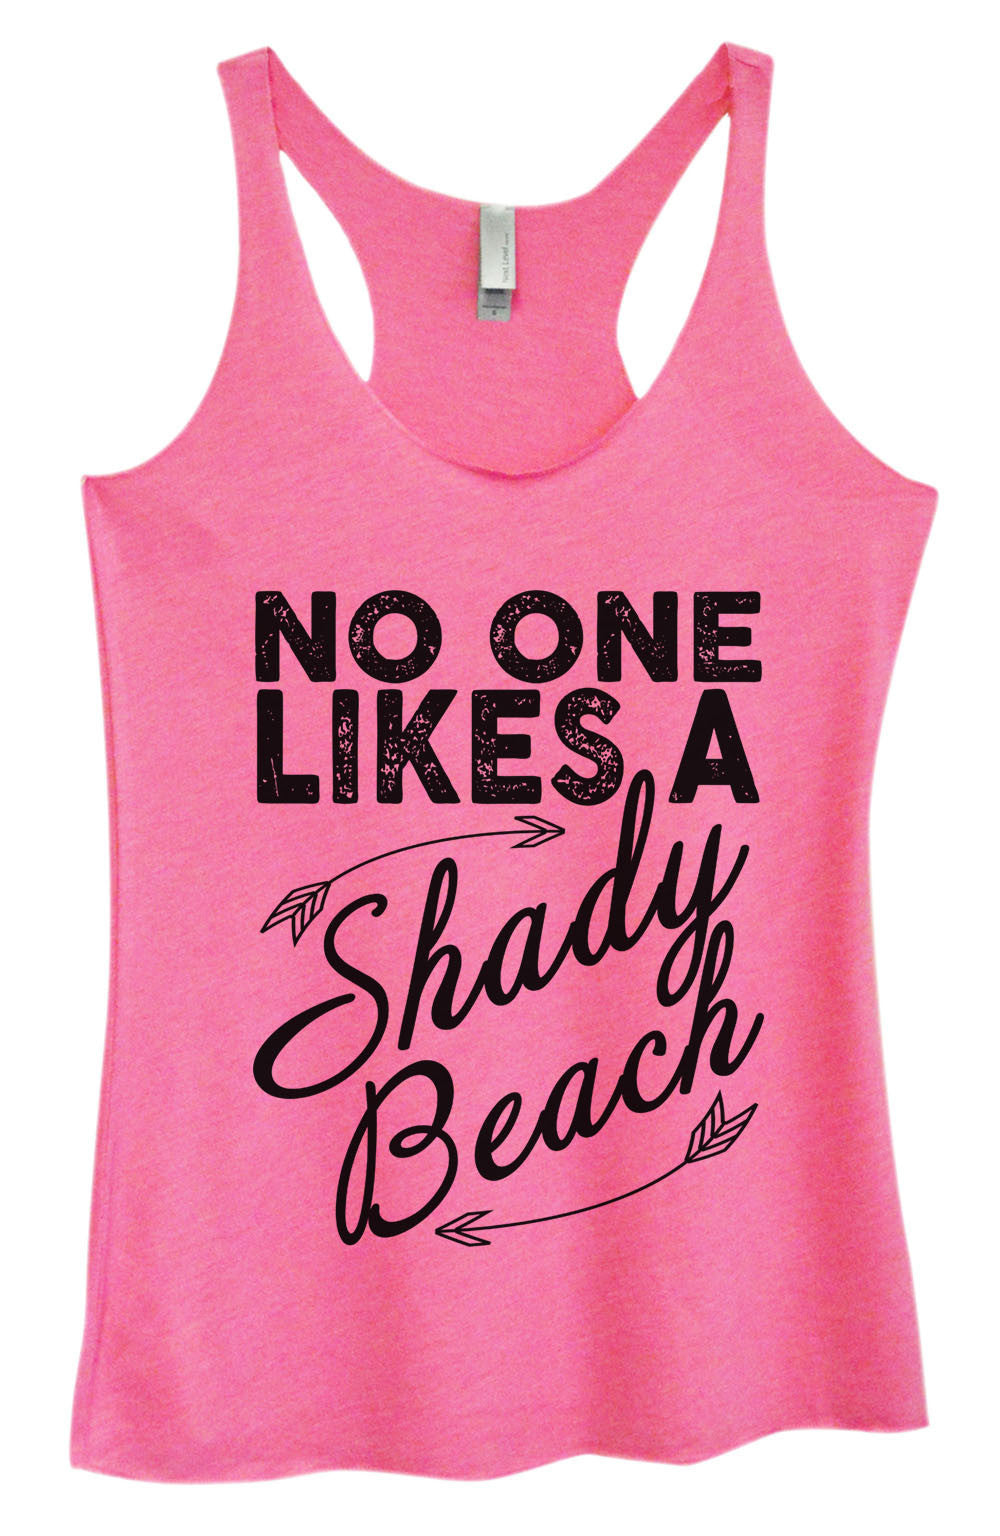 Womens Fashion Triblend Tank Top - No One Likes A Shady Beach - Tri-964 - Funny Shirts Tank Tops Burnouts and Triblends  - 4